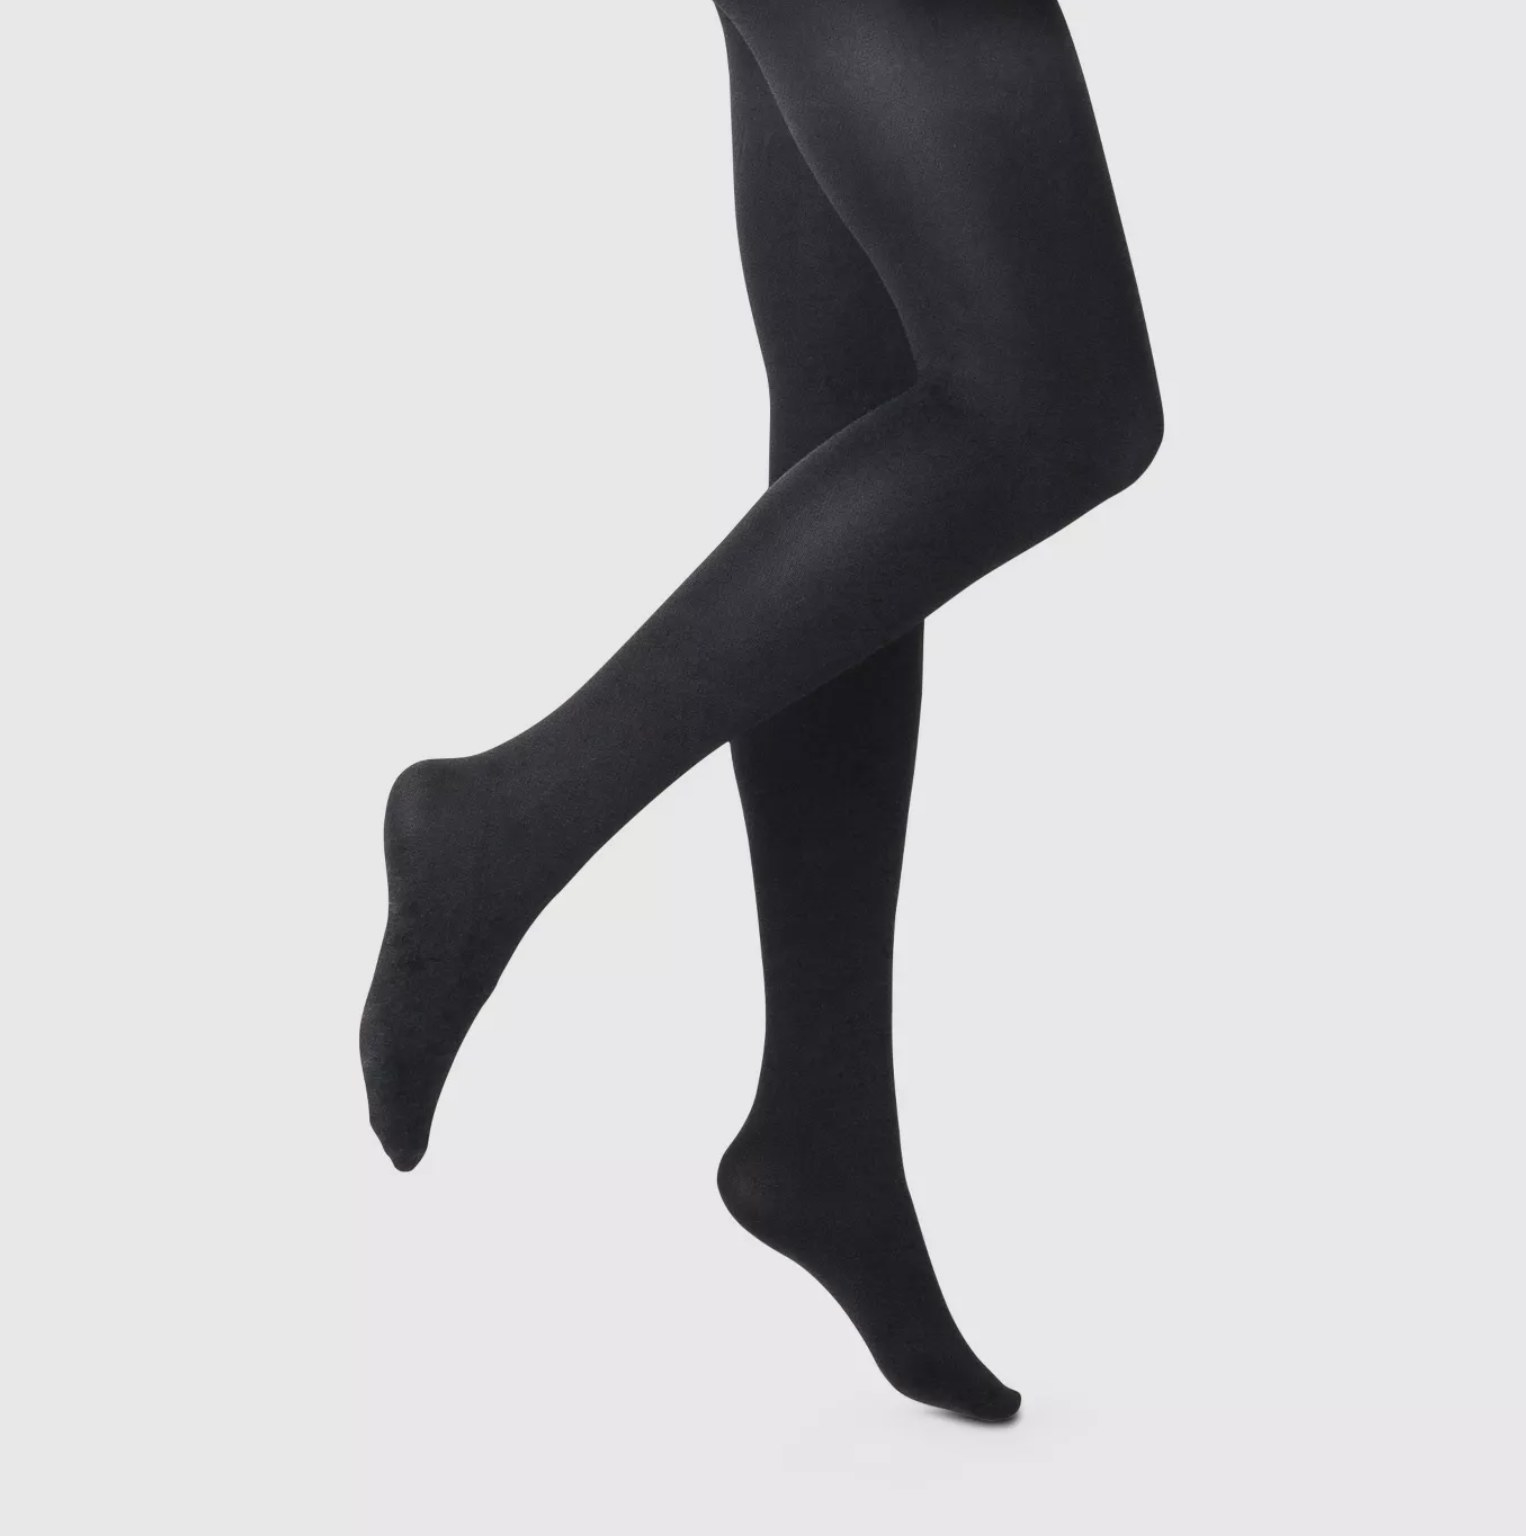 The opaque black tights